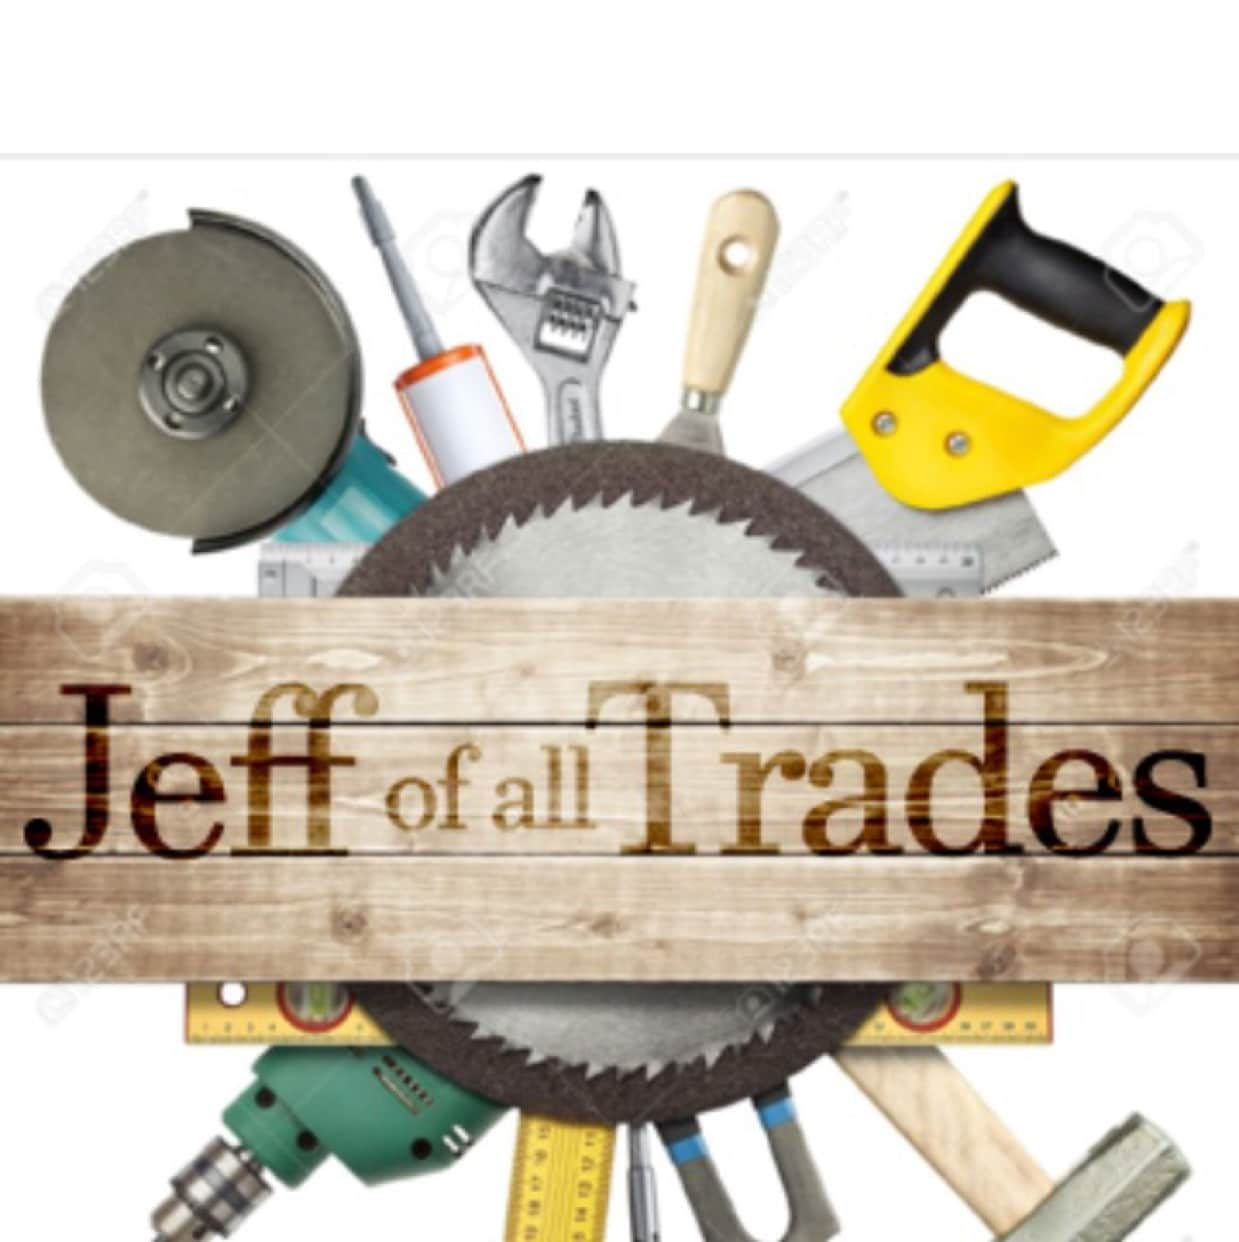 Jeff Of All Trades